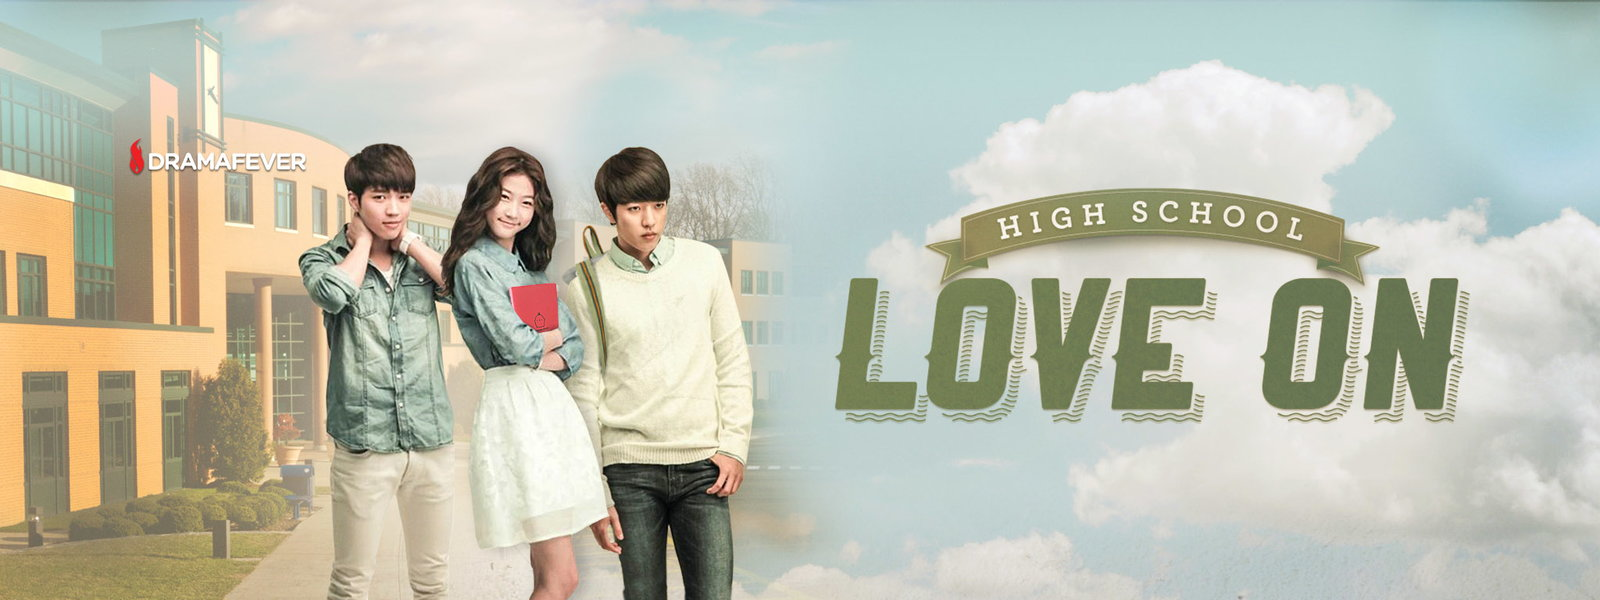 High School Love on Poster High School Love on